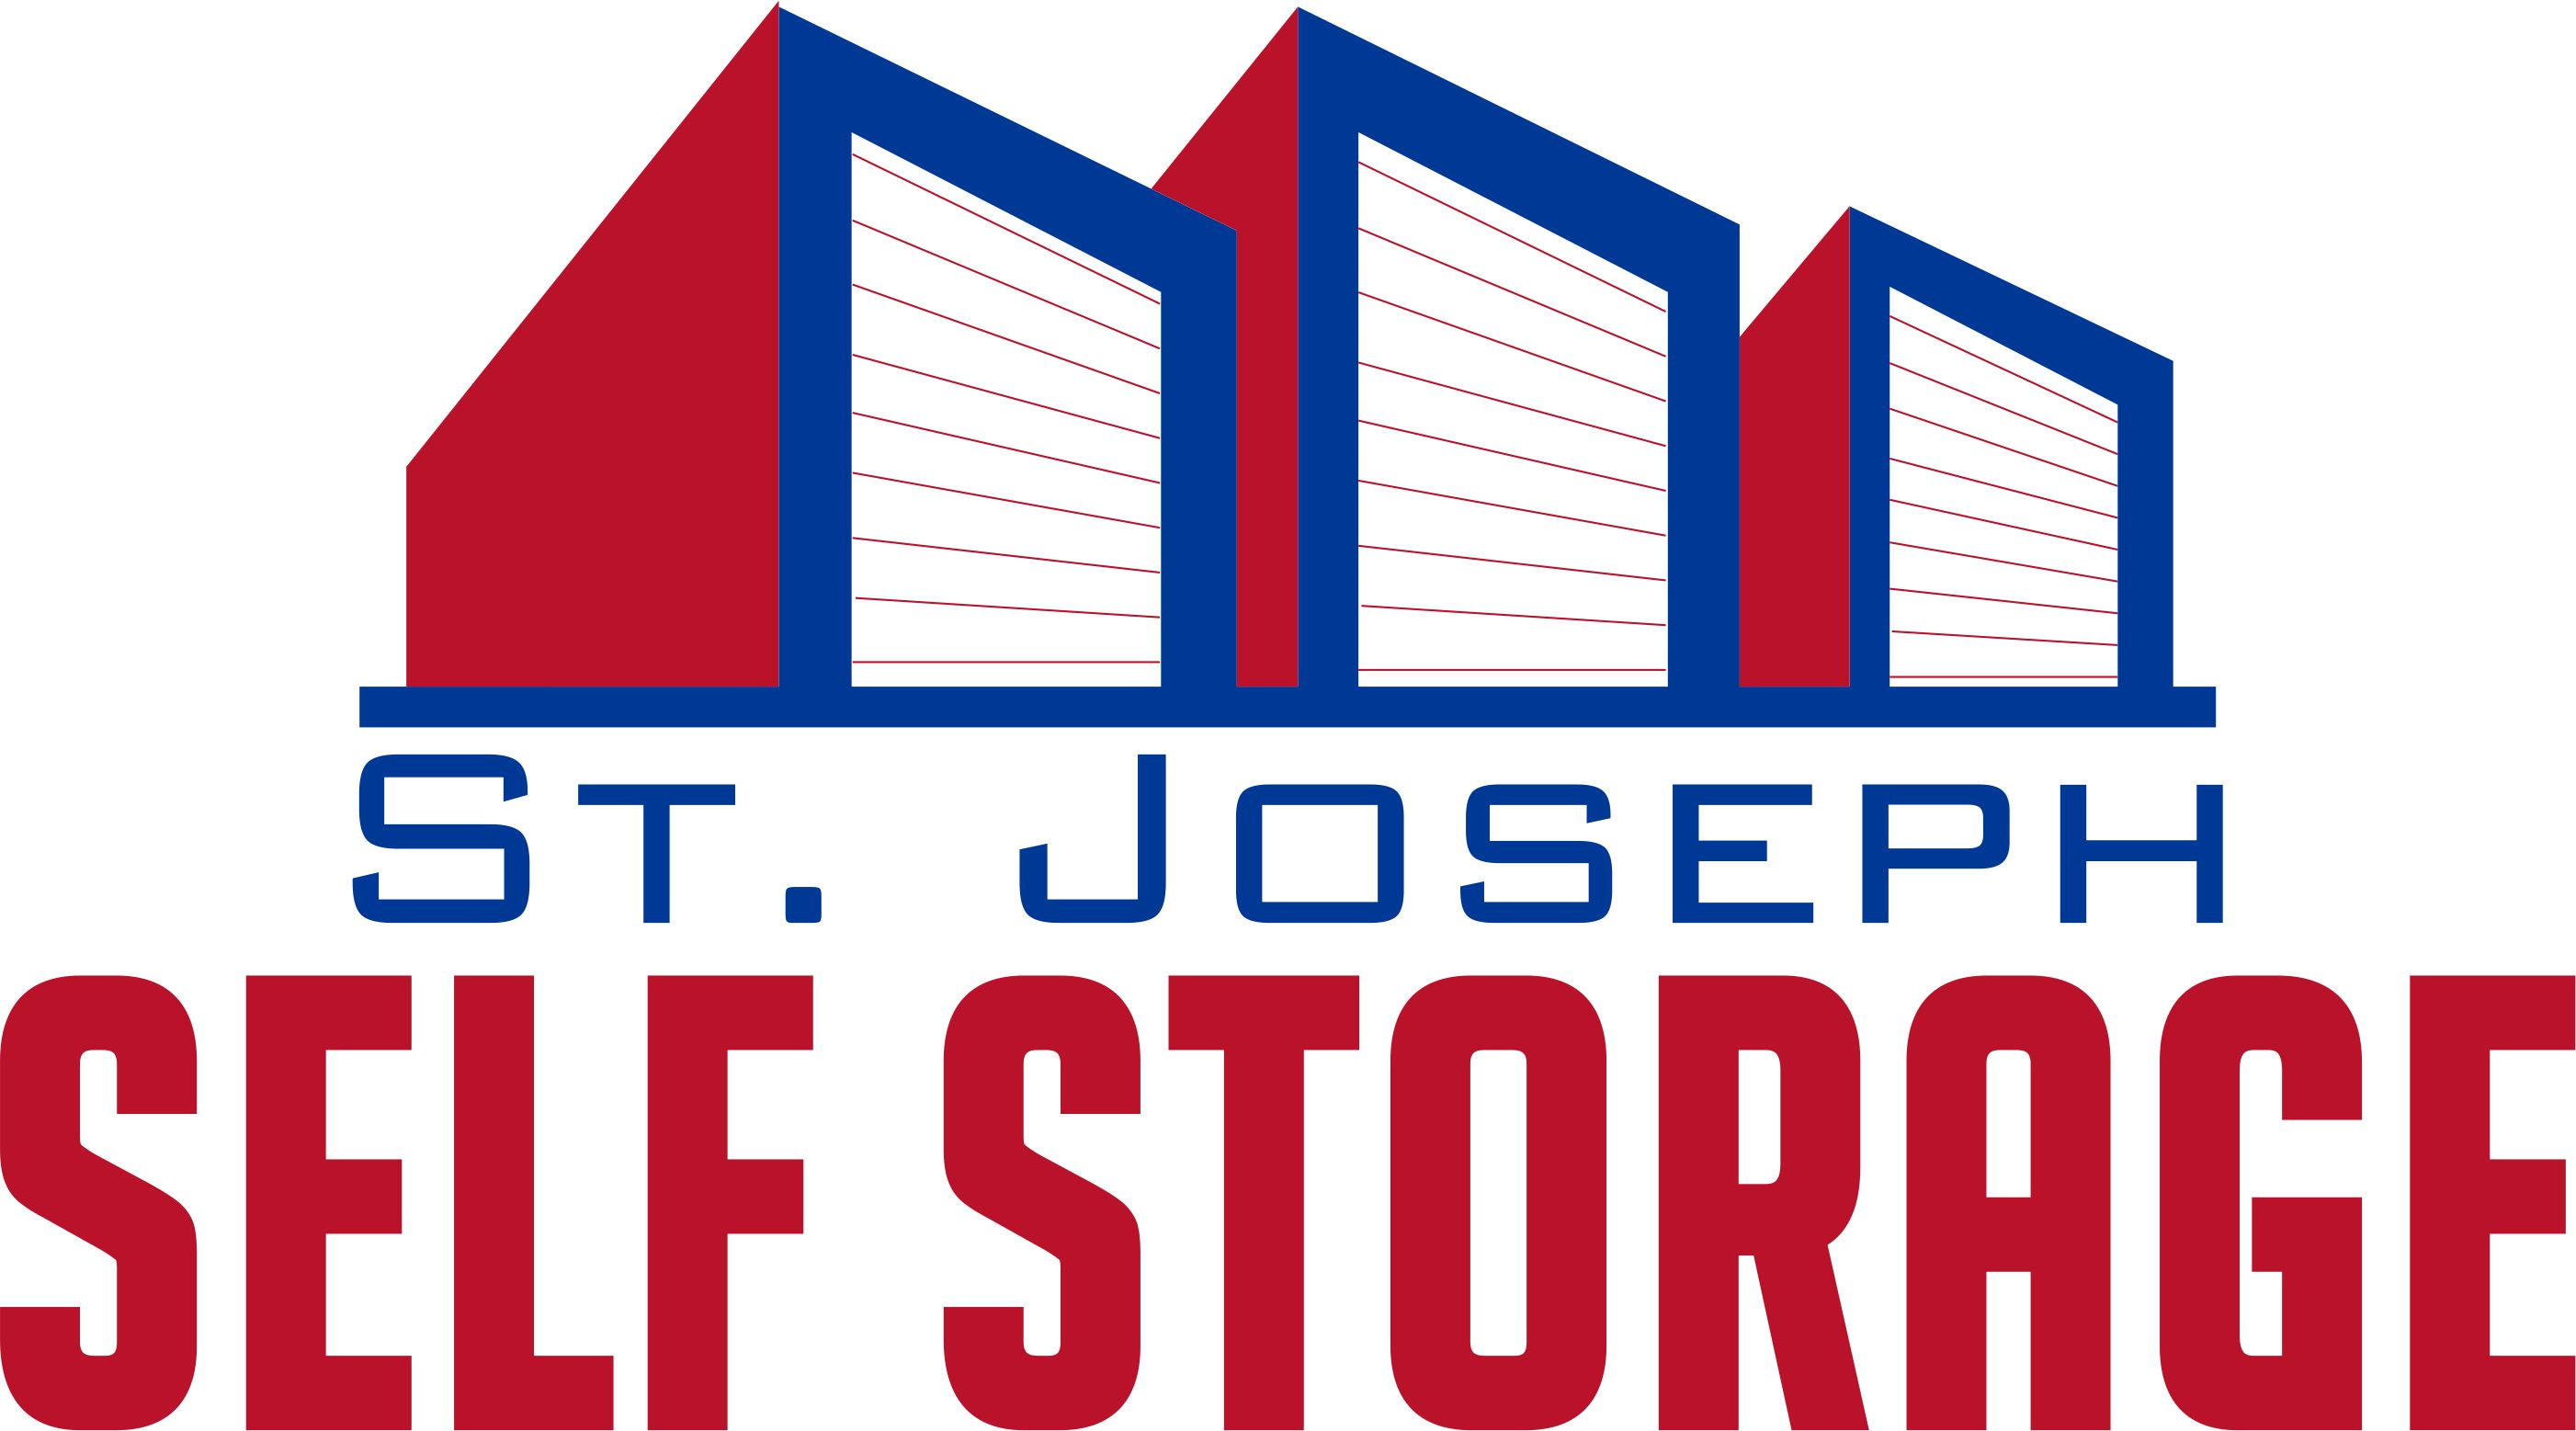 St. Joseph Self Storage